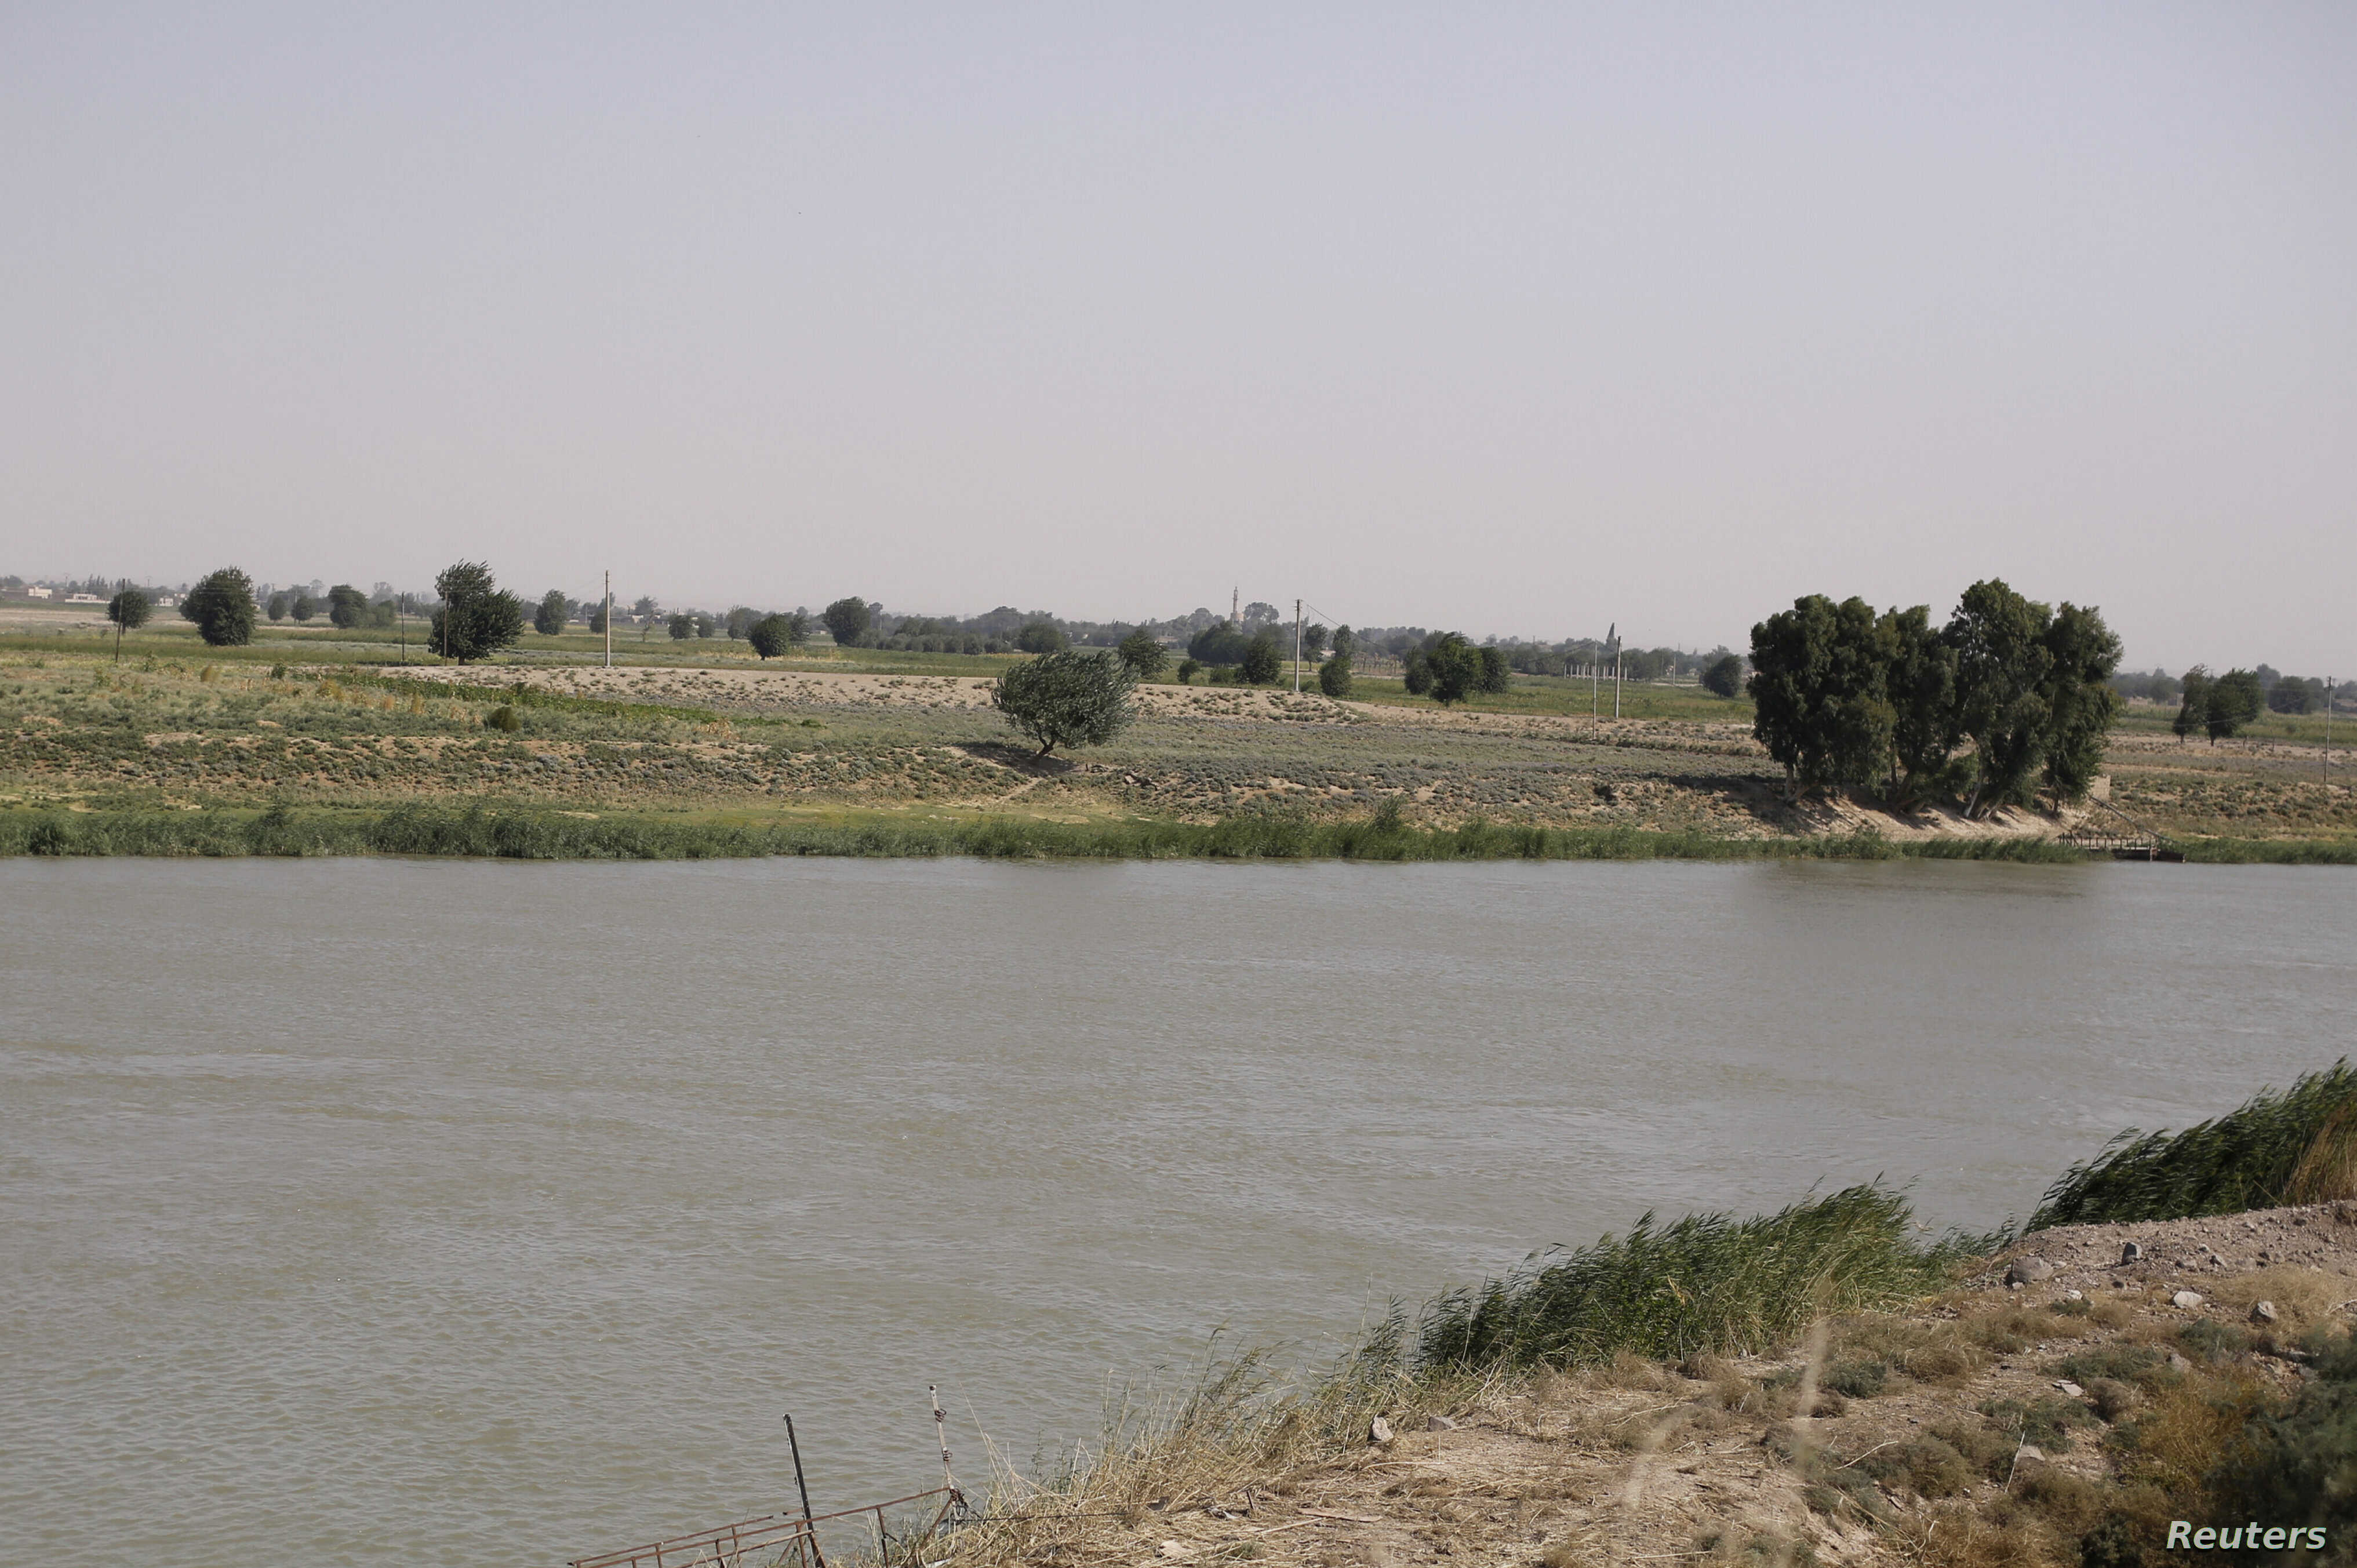 A view of the Euphrates River from al-Bugilia, north of Deir el-Zour, Syria, Sept. 21, 2017.